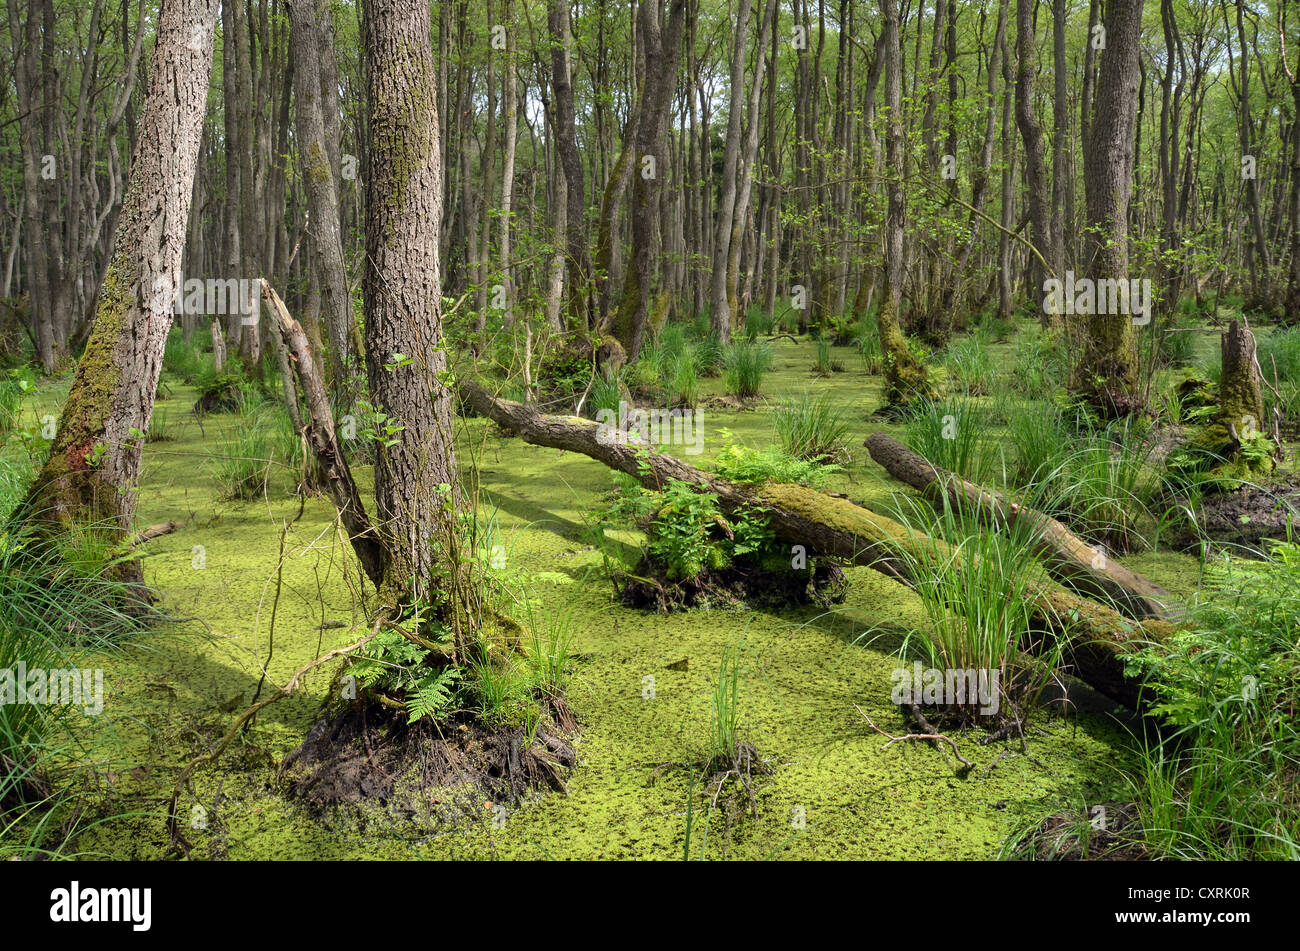 Swamp with a forest of Alder trees (Alnus glutinosa), Western Pomerania Lagoon Area National Park, Darss, Baltic - Stock Image